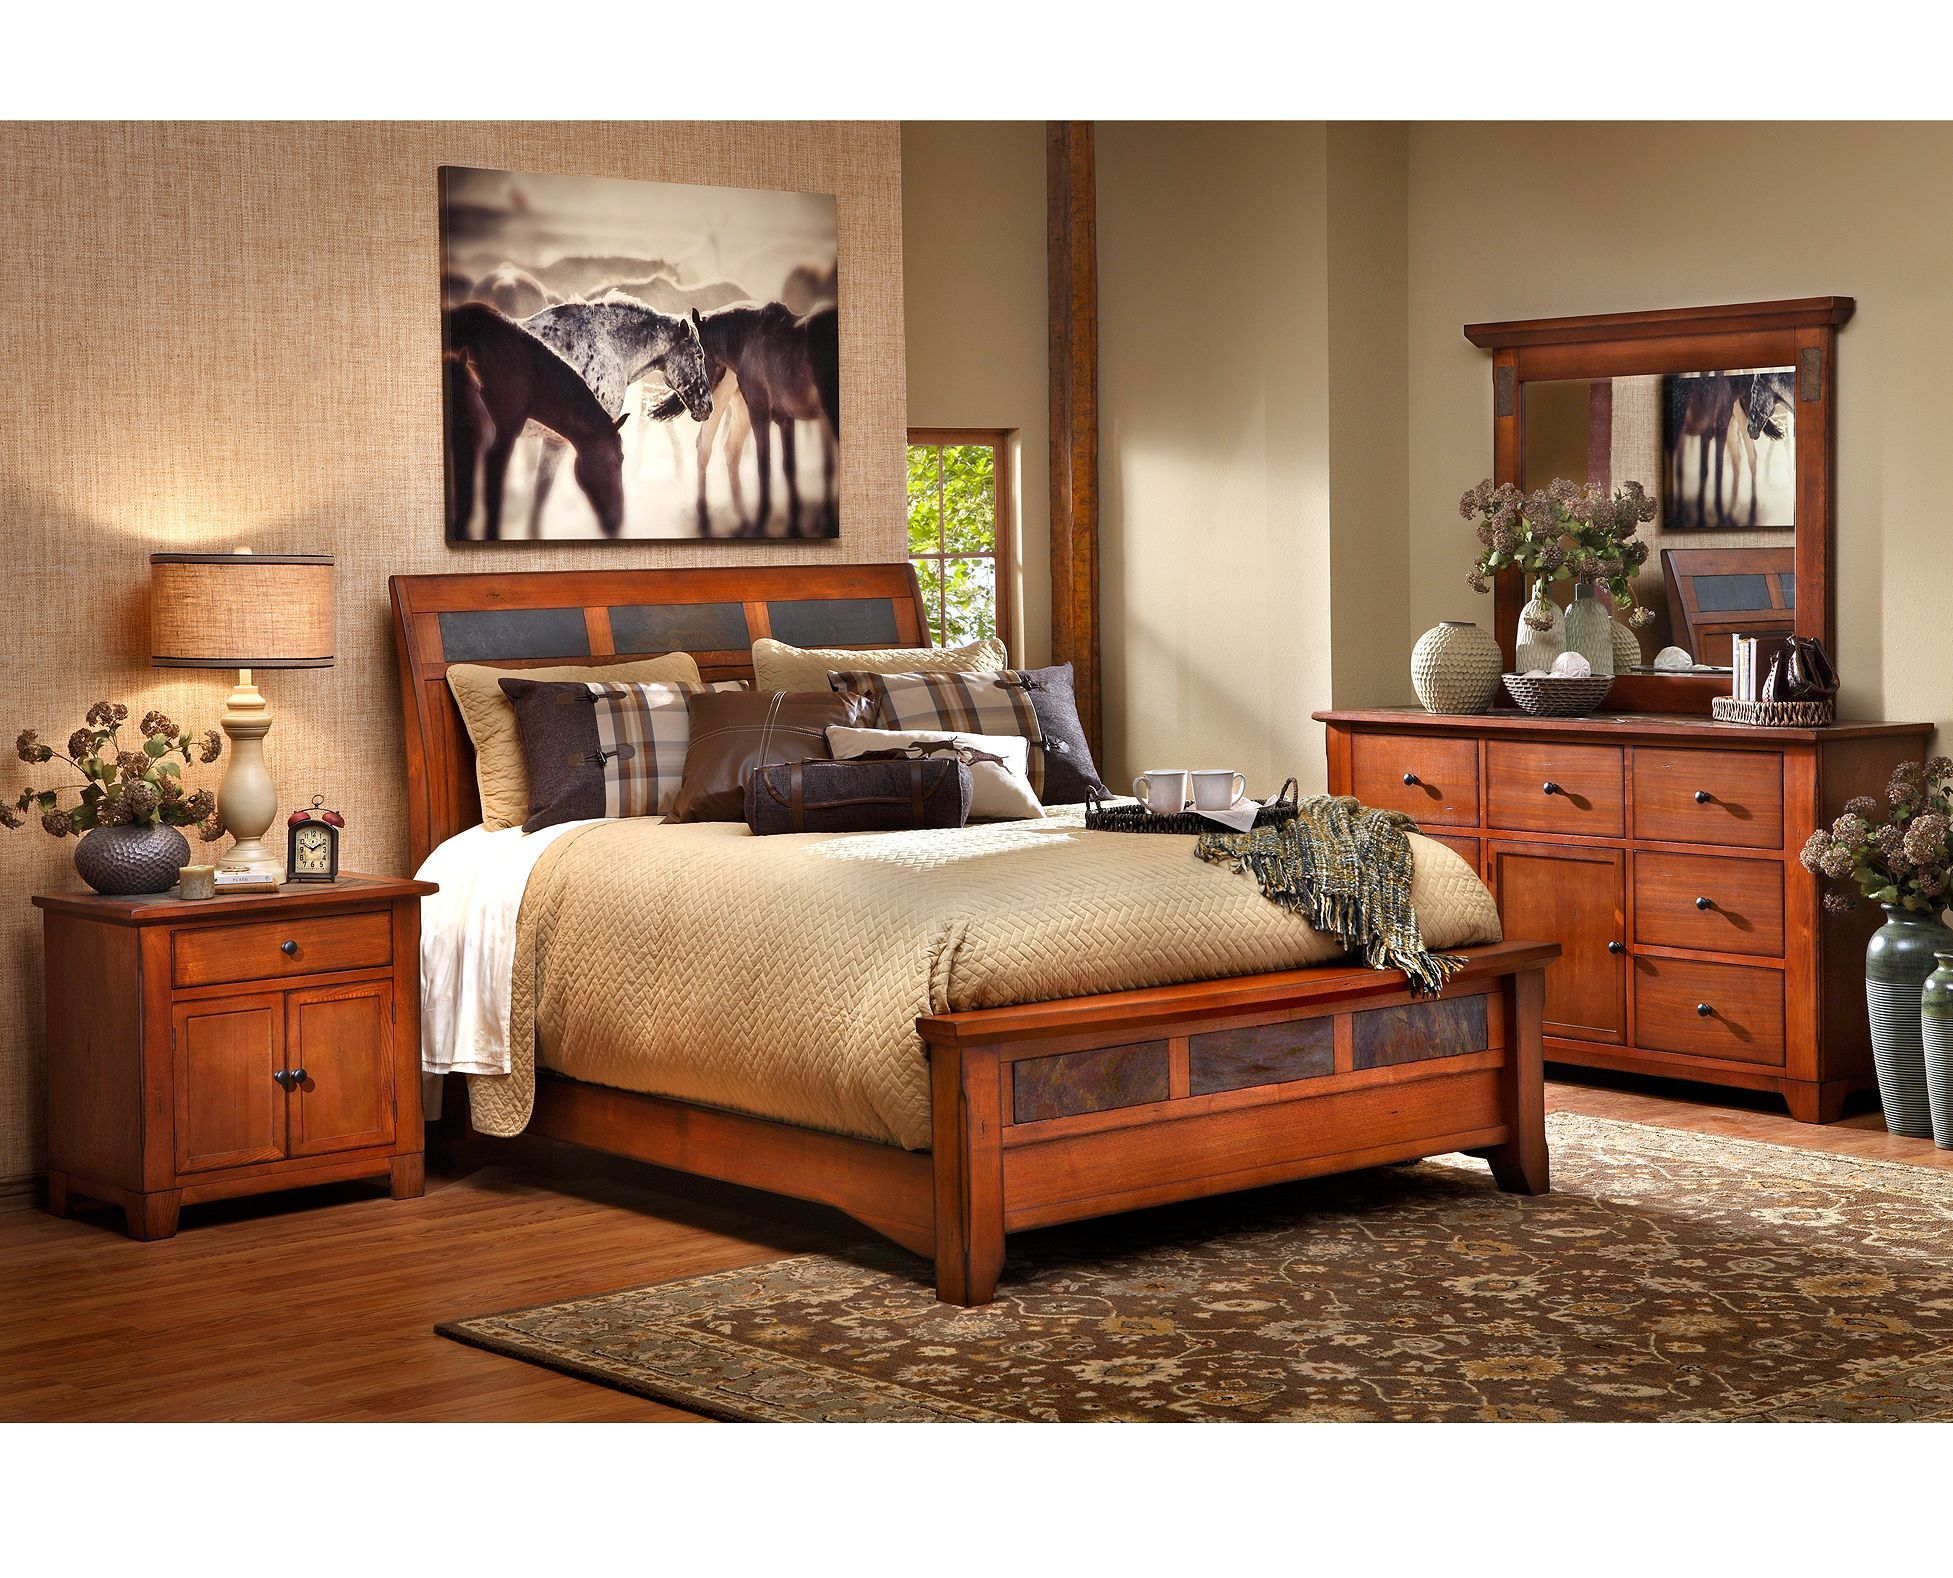 Beds Aspen Sleigh Bed Lodge Inspired Yet Versatile